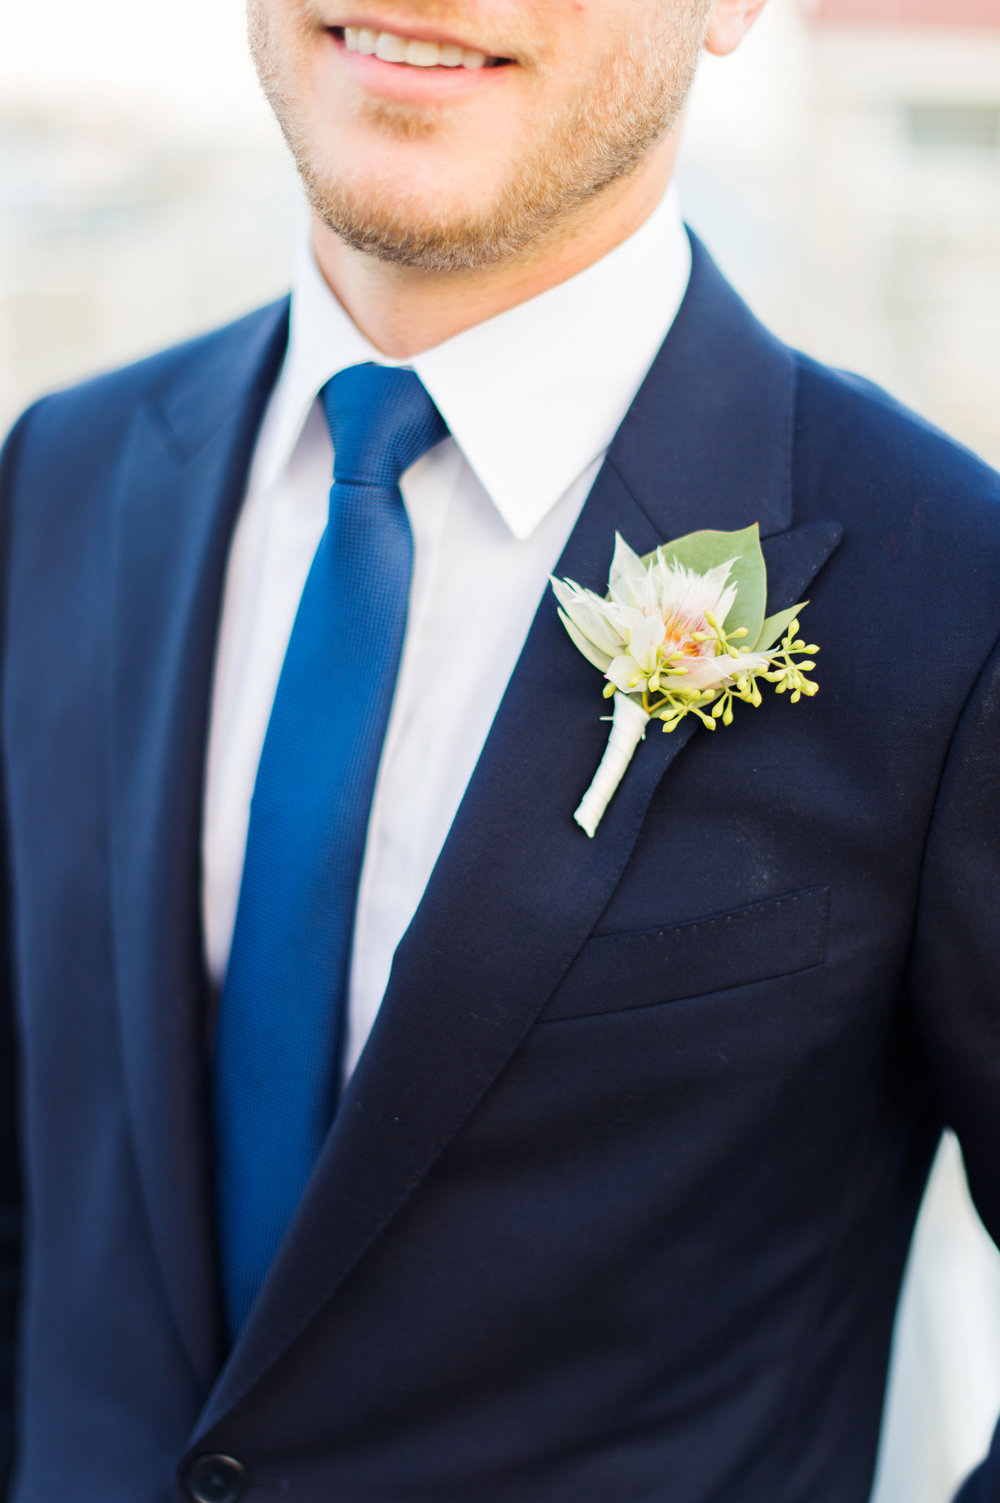 Blushing bride boutonniere groom